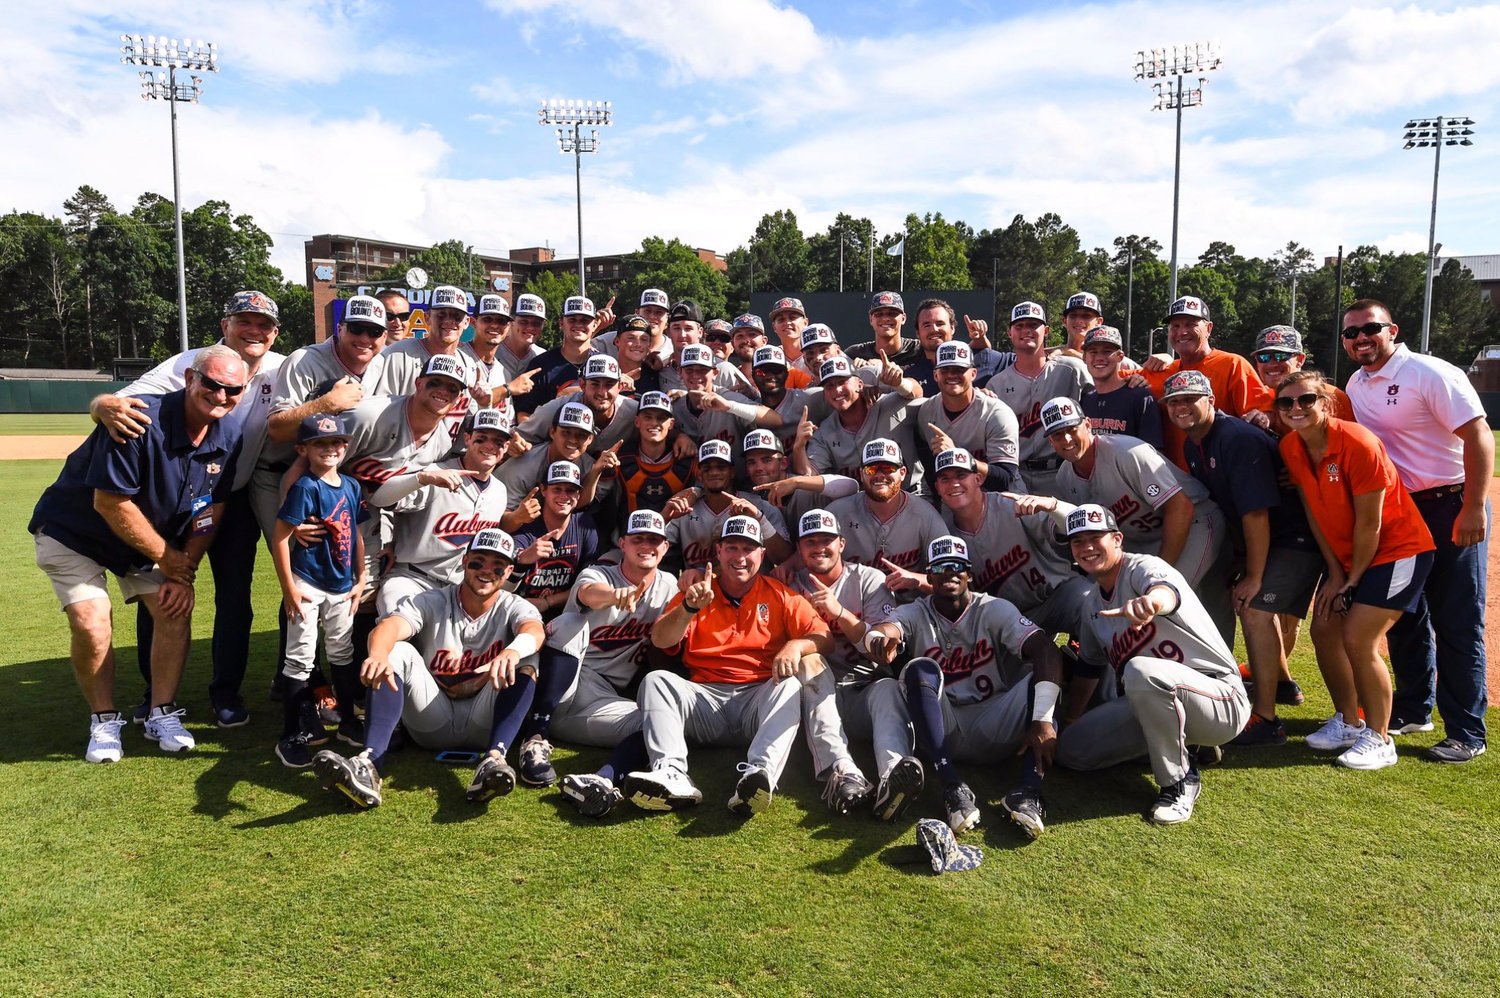 Members of the Auburn baseball team celebrate a win over North Carolina Monday in Chapel Hill. The victory sends the Tigers to the College World Series in Omaha.